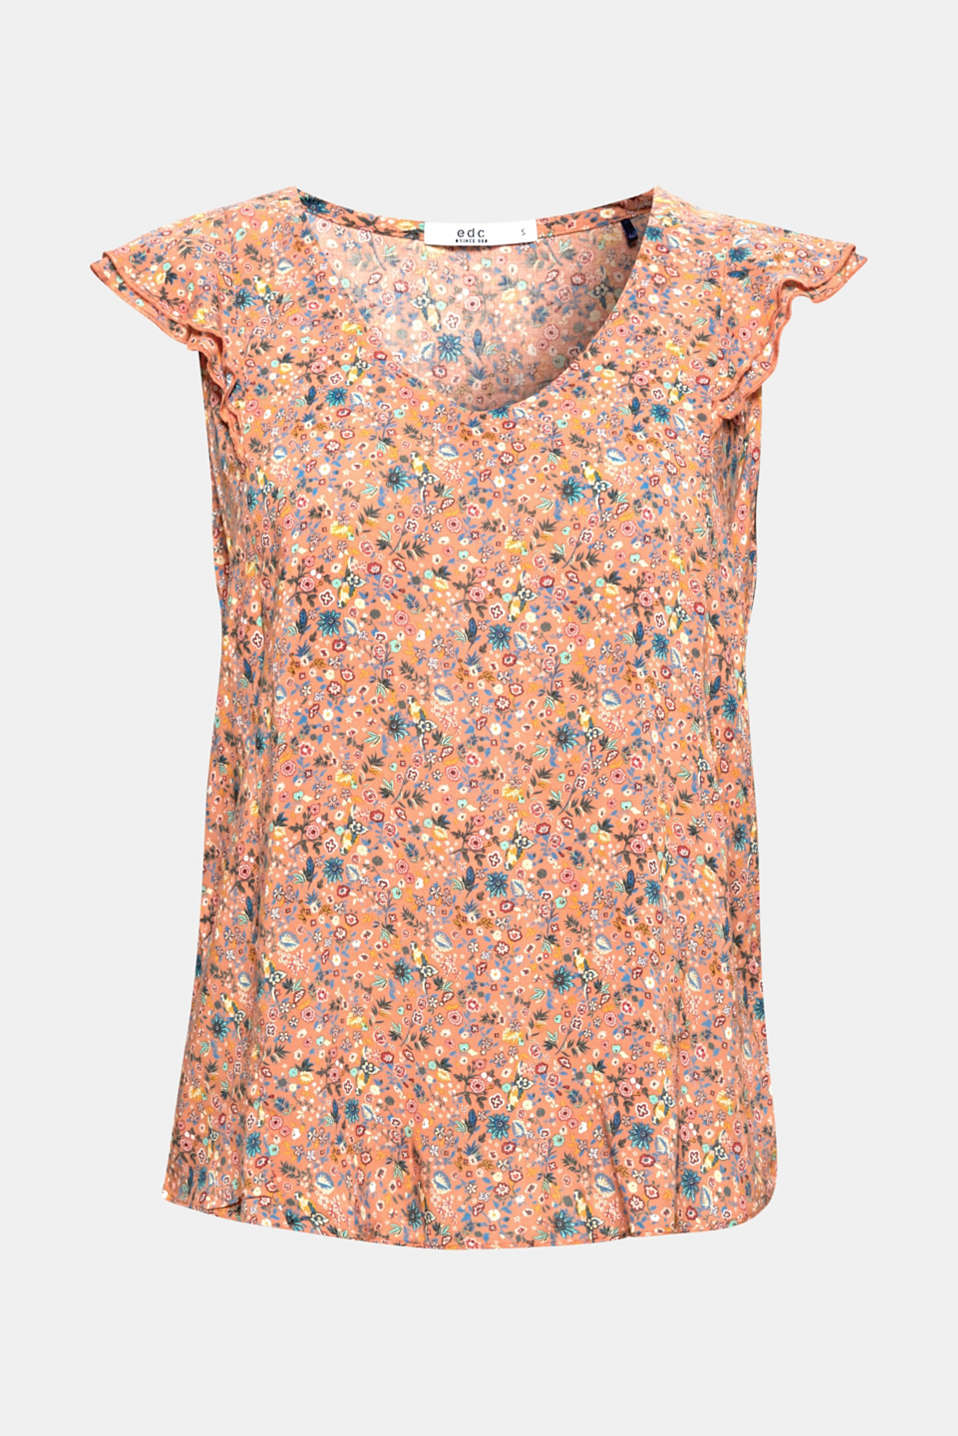 We love flowers! The fine, highly detailed floral print gives this top its fresh look.